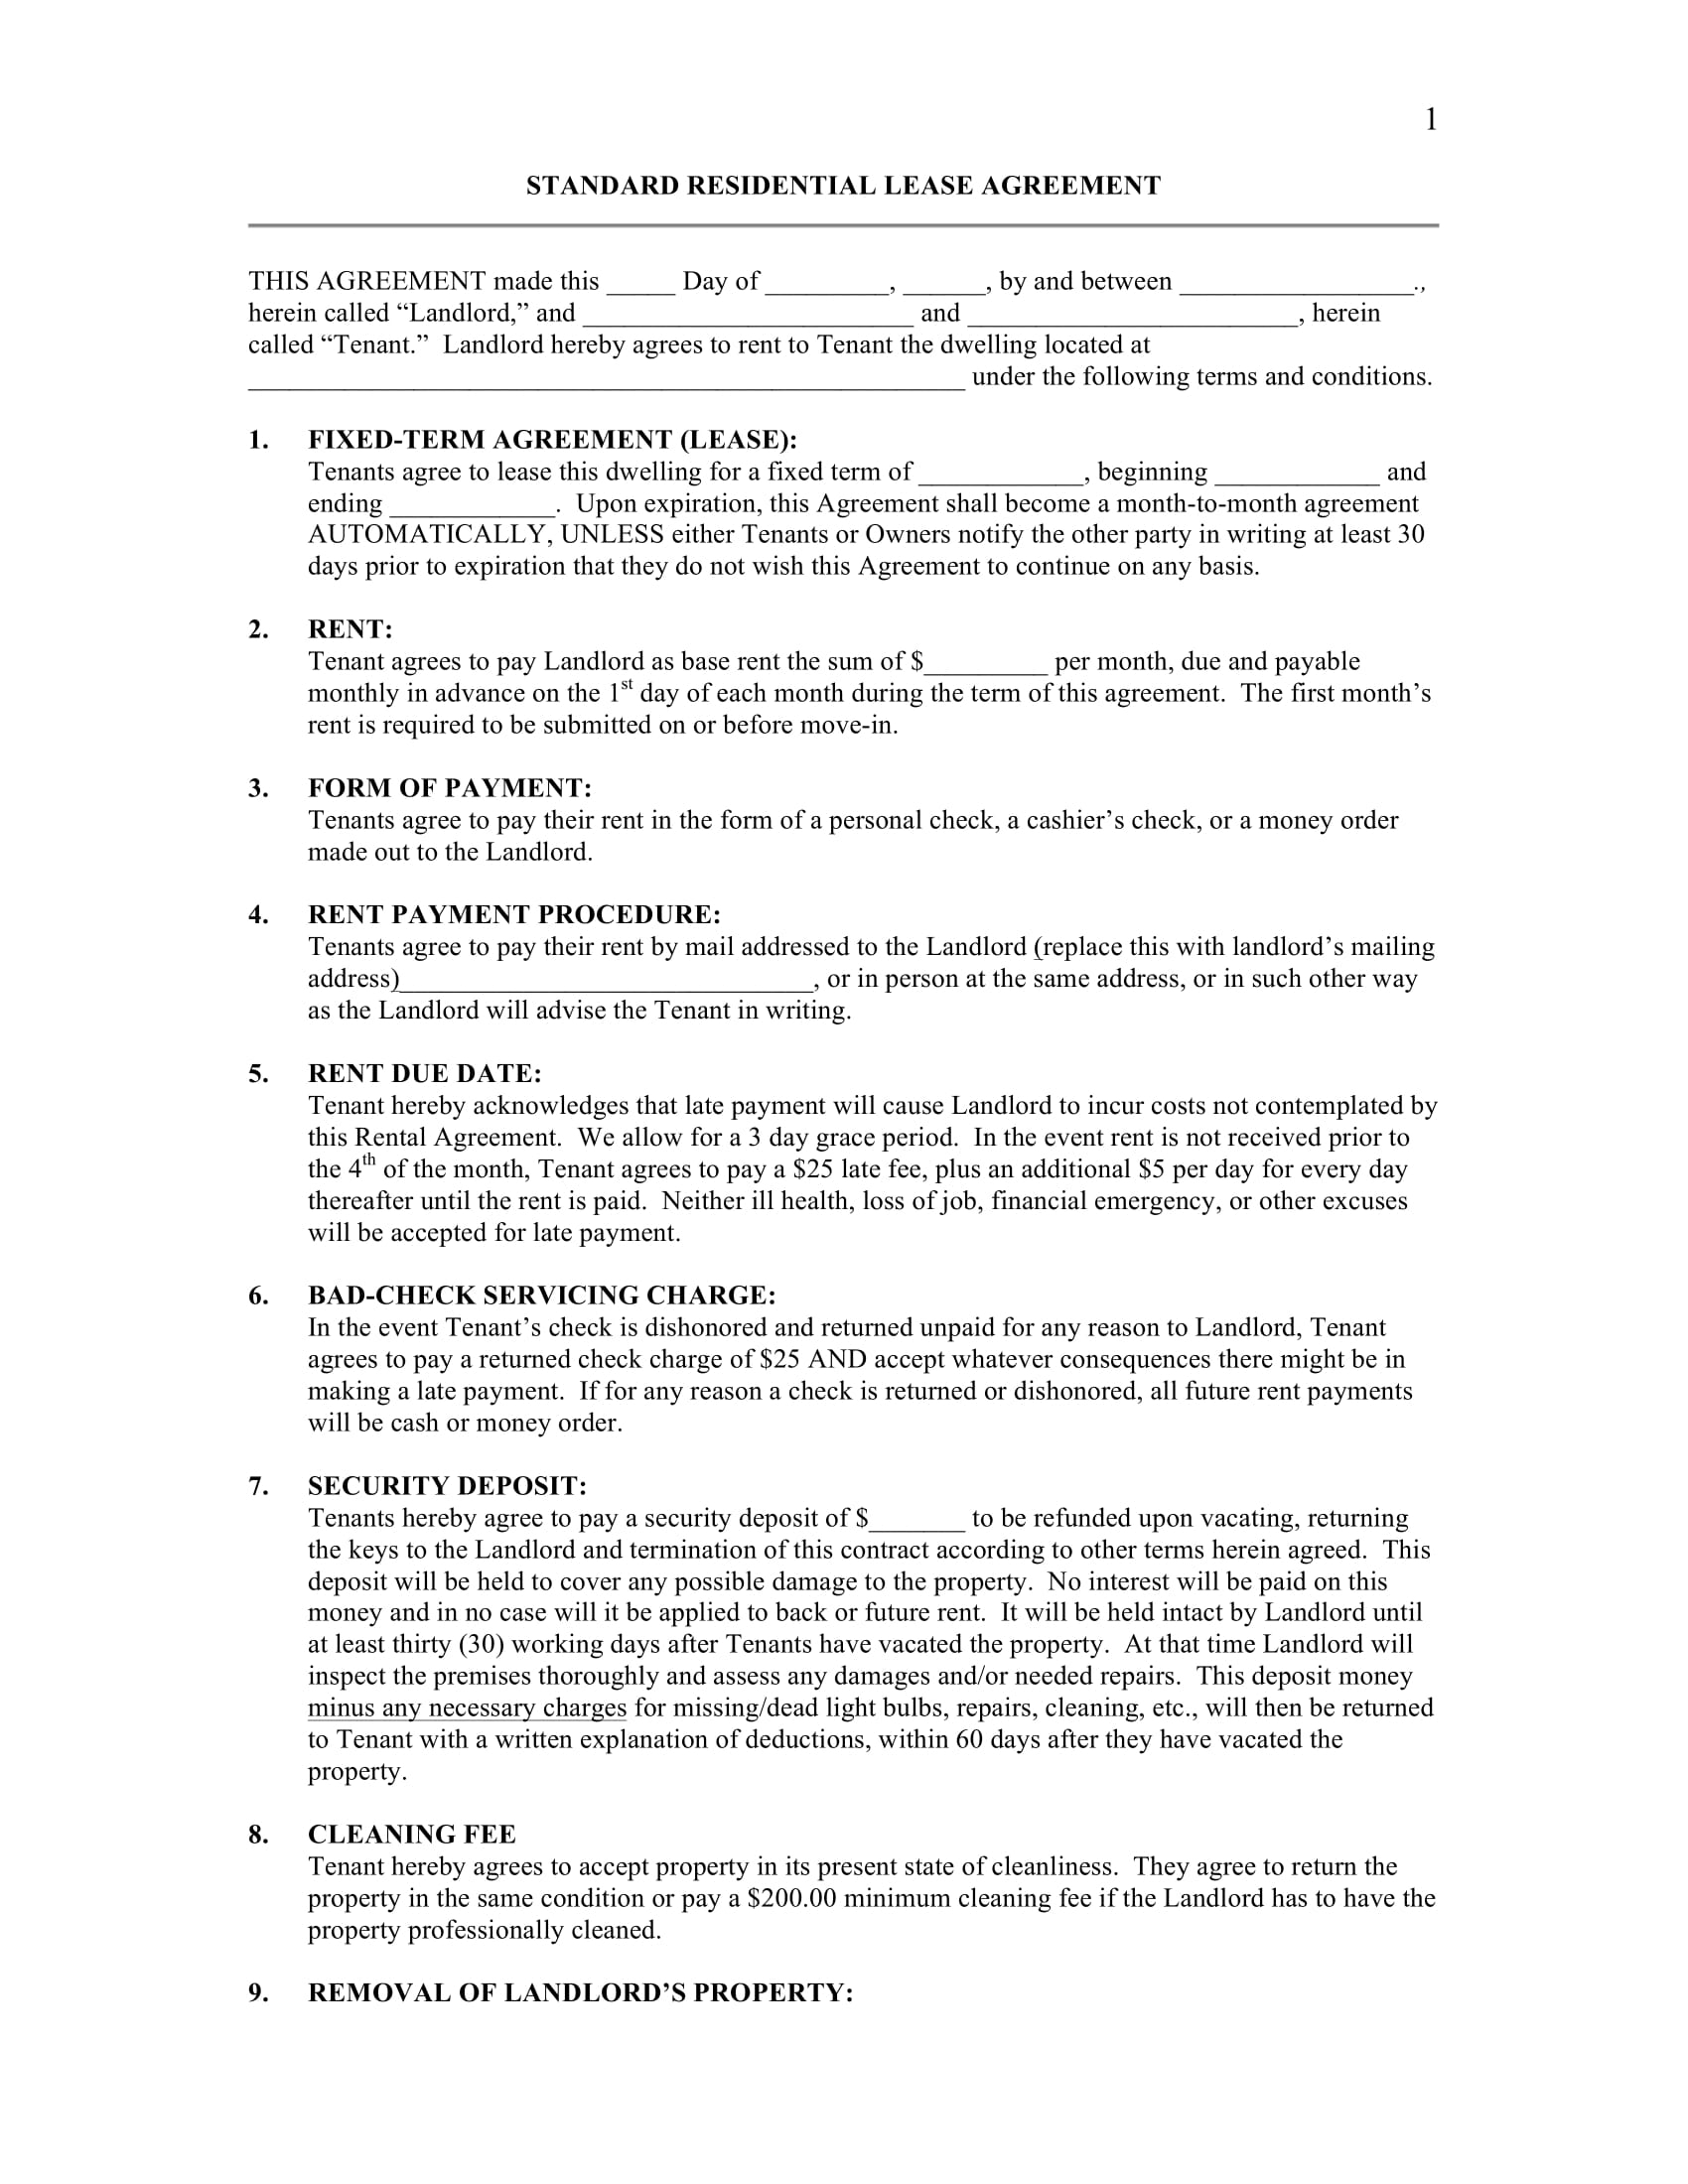 Letter To Tenants Regarding Cleanliness from images.sampleforms.com